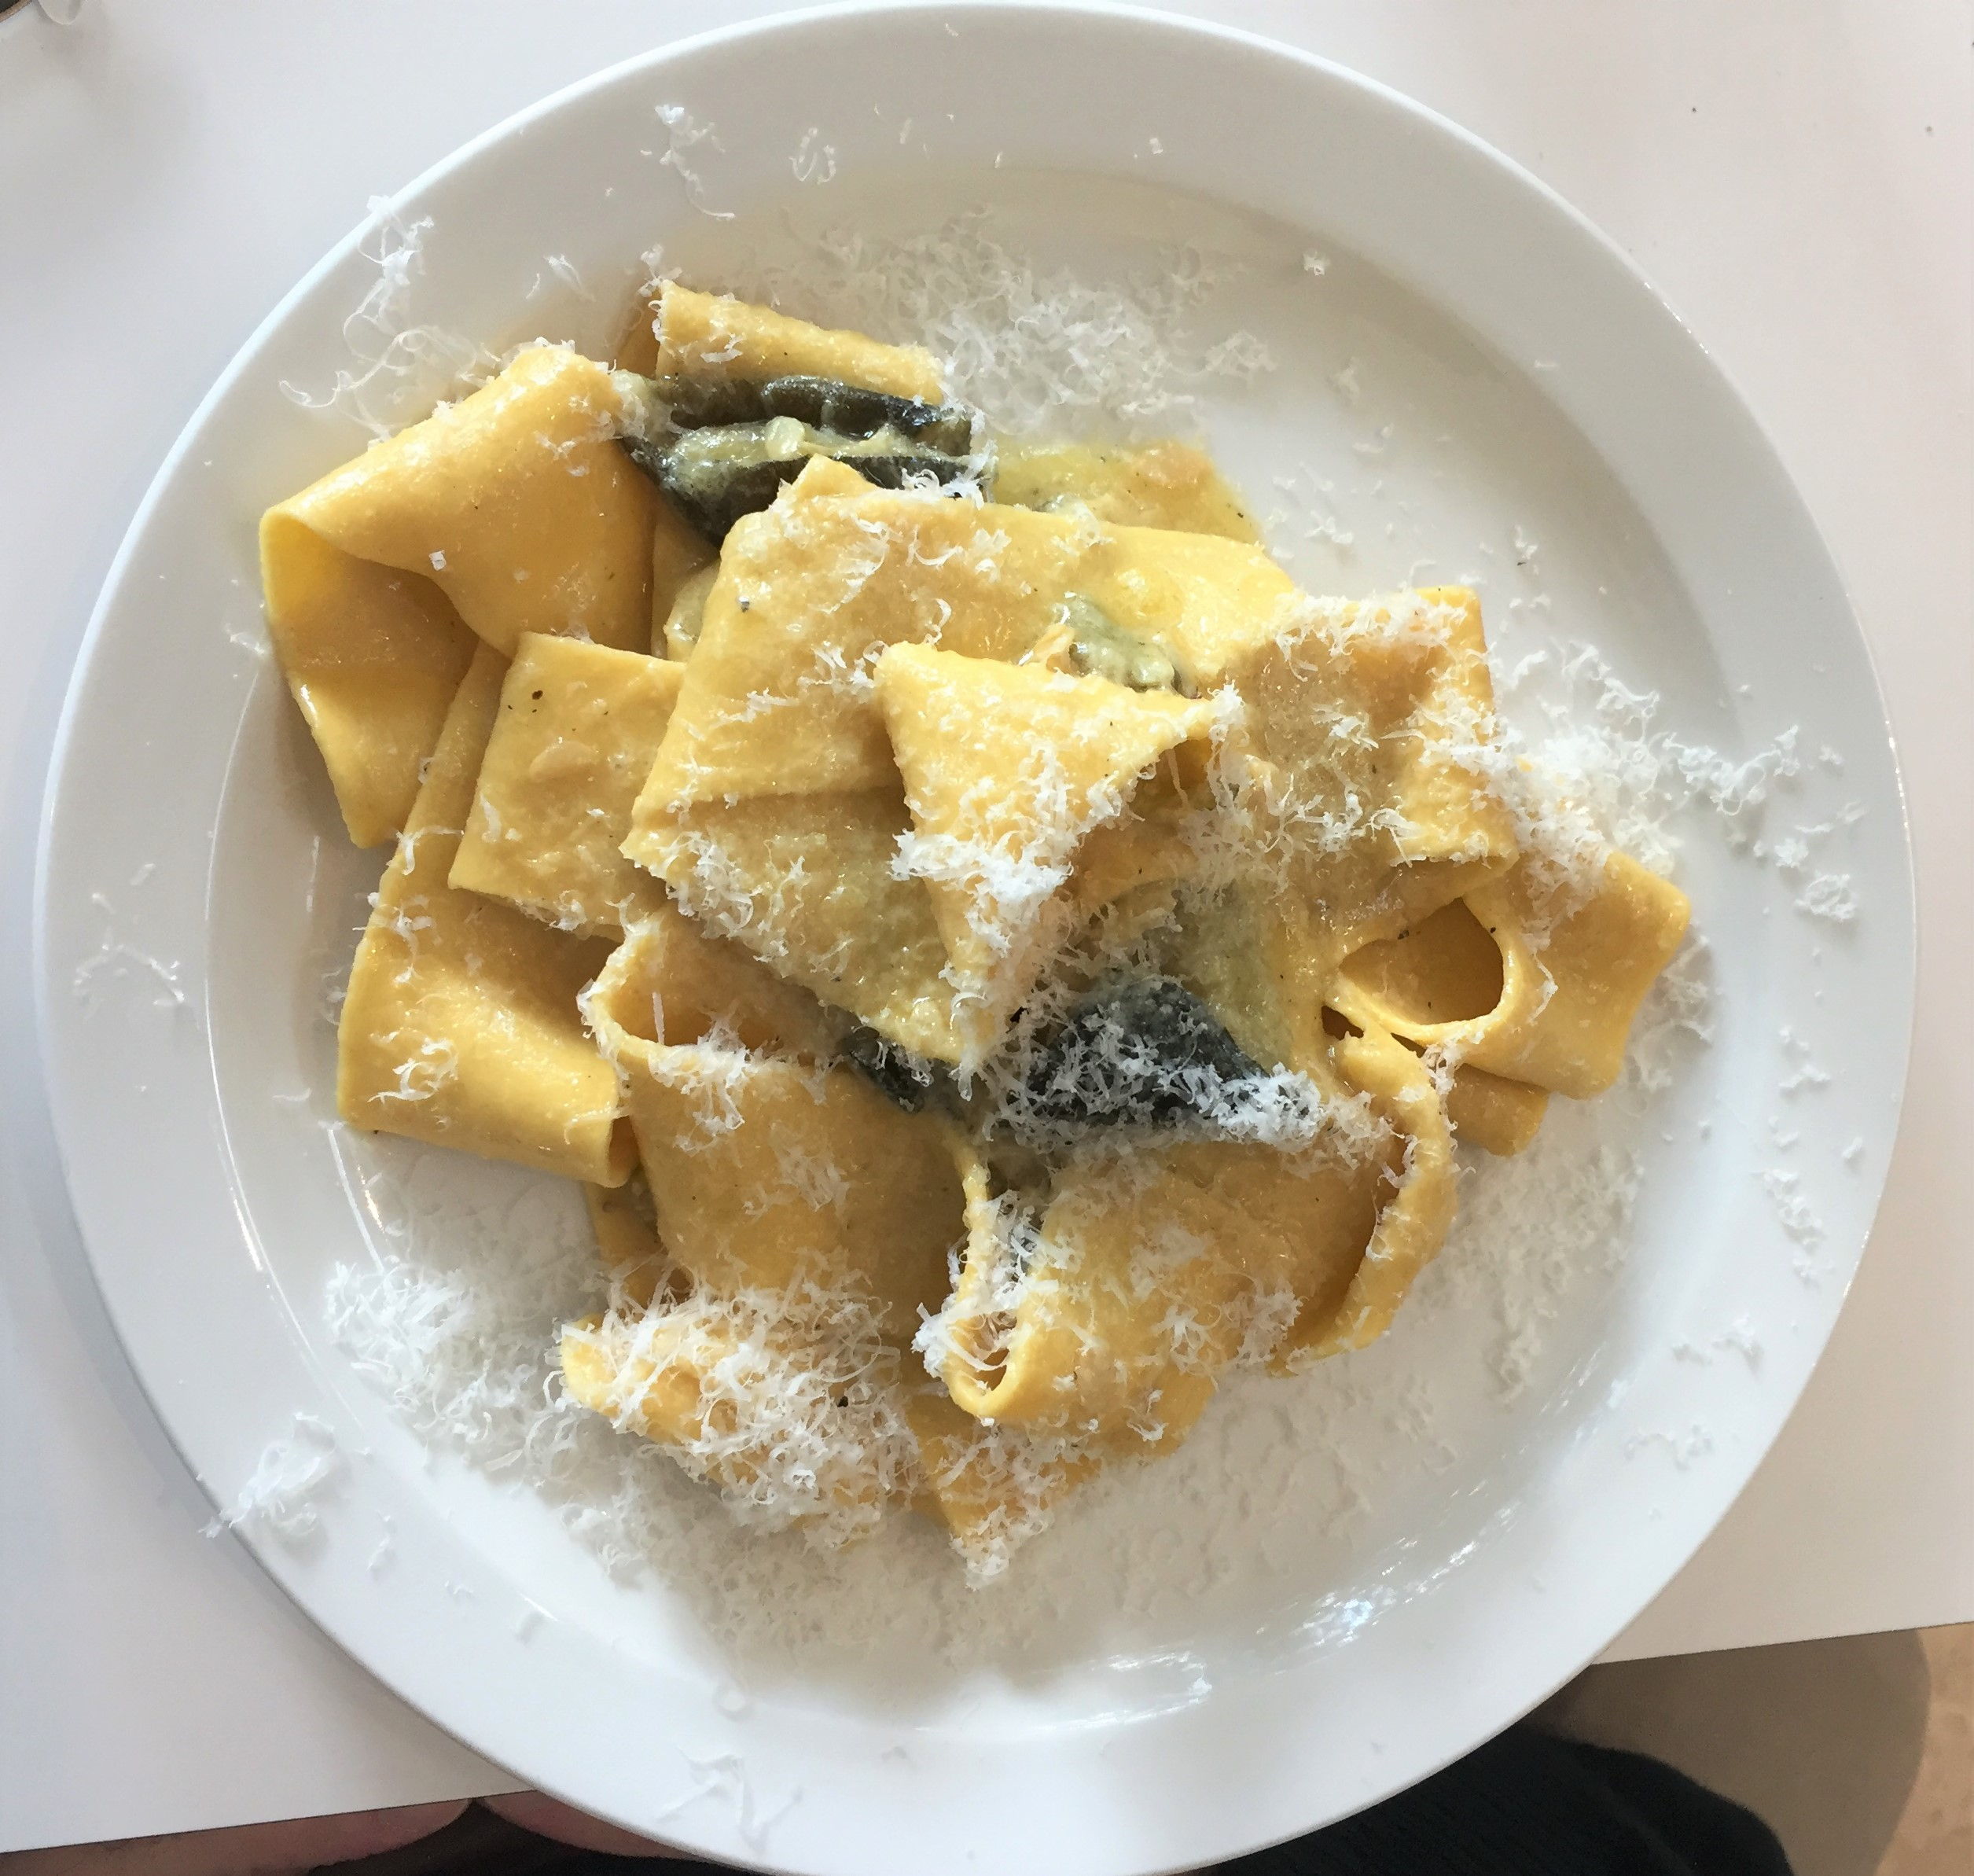 Pappardelle, courgettes and parmesan at The Garden Cafe Museum - kenningtonrunoff.com